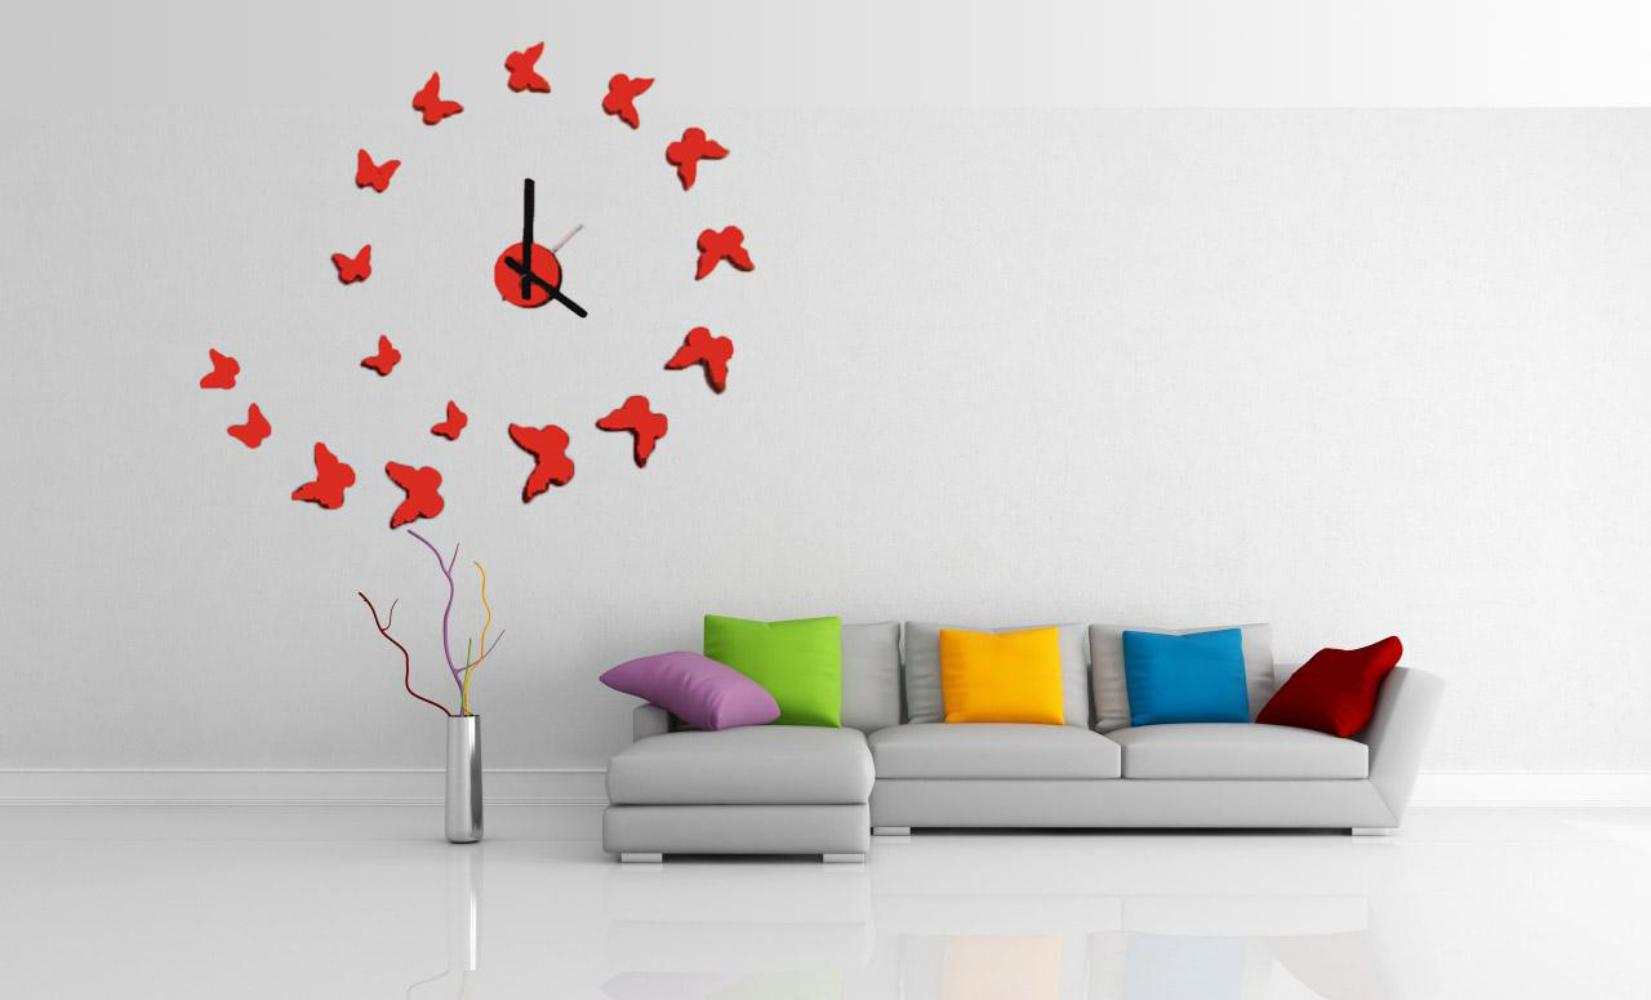 Merveilleux Install Butterly Modern Wall Clocks Inside Spacious Room With Grey  Sectional Sofa And Colorful Cushions